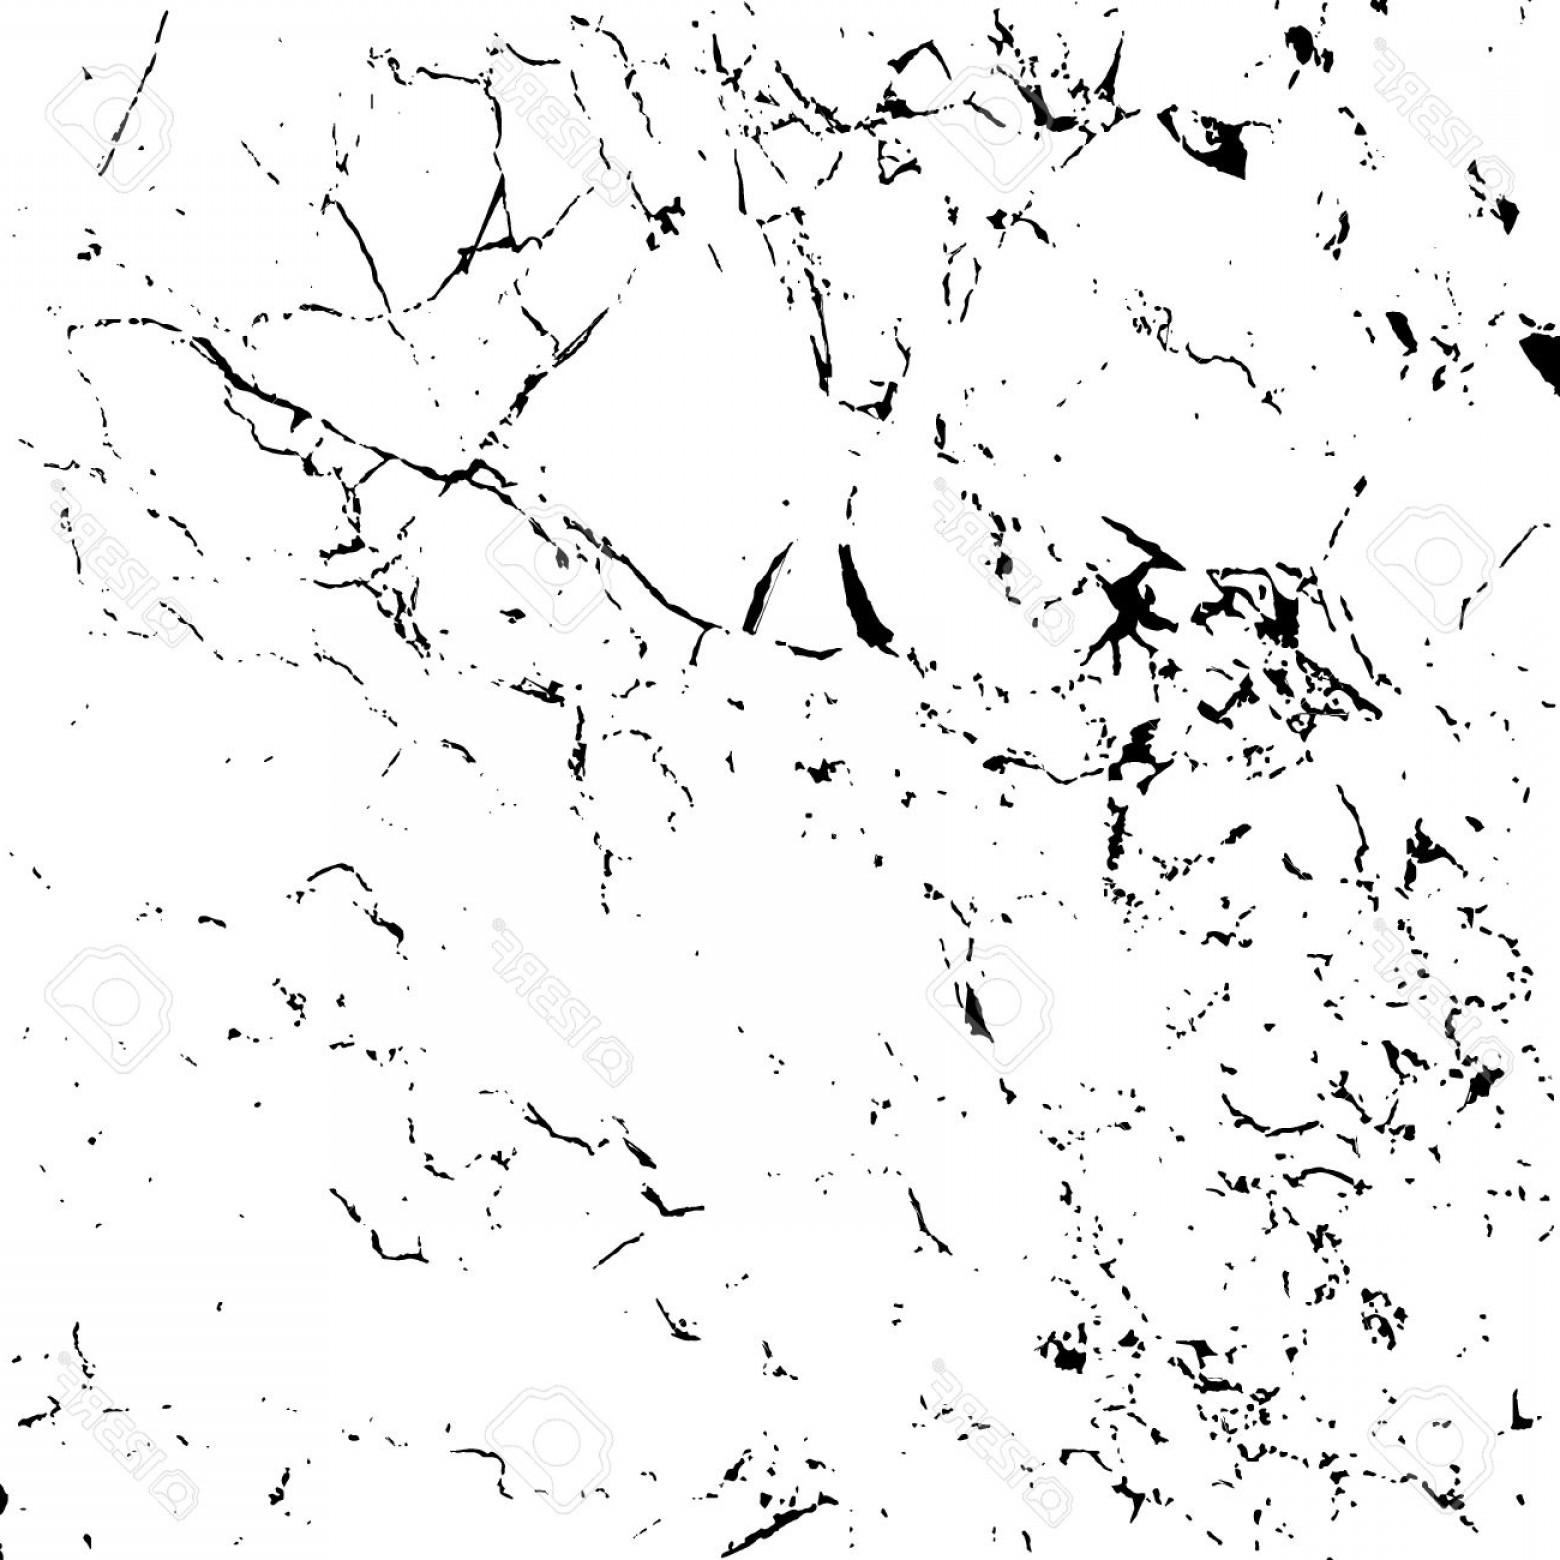 1560x1560 Photostock Vector Grunge Marble Texture White And Black Sketch